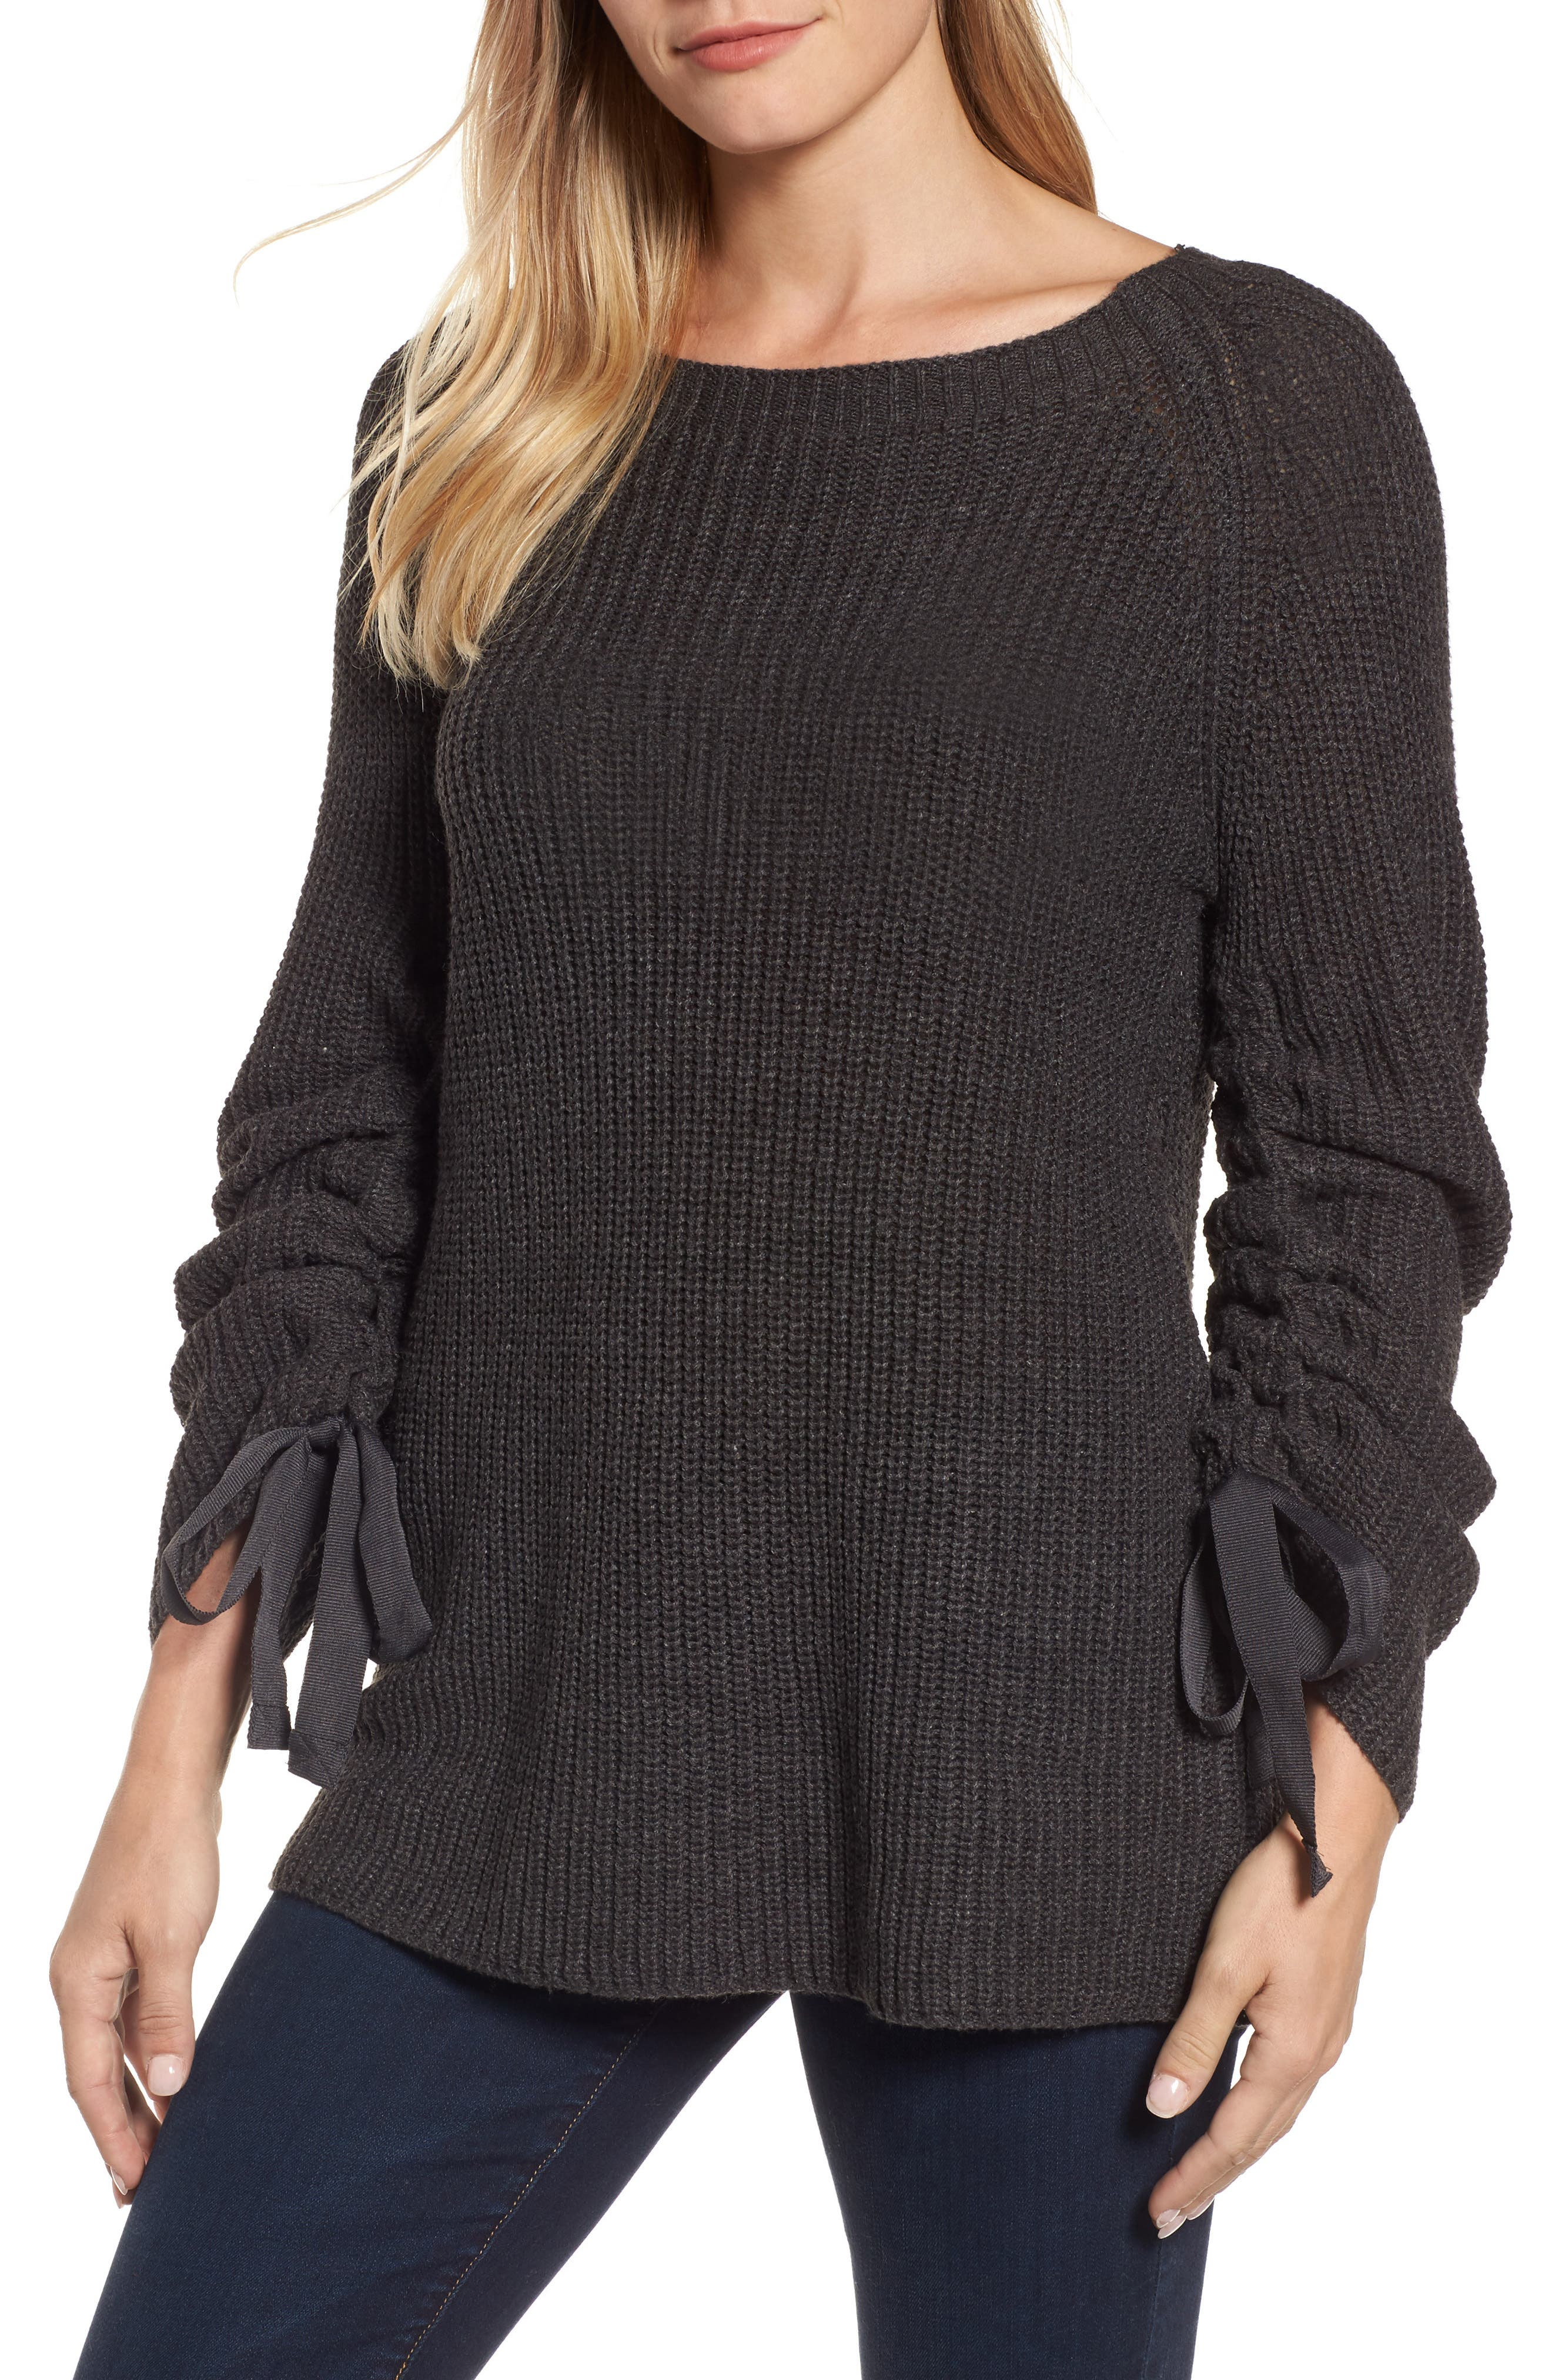 RD Style Tie Sleeve Sweater,                             Main thumbnail 1, color,                             Ash Grey